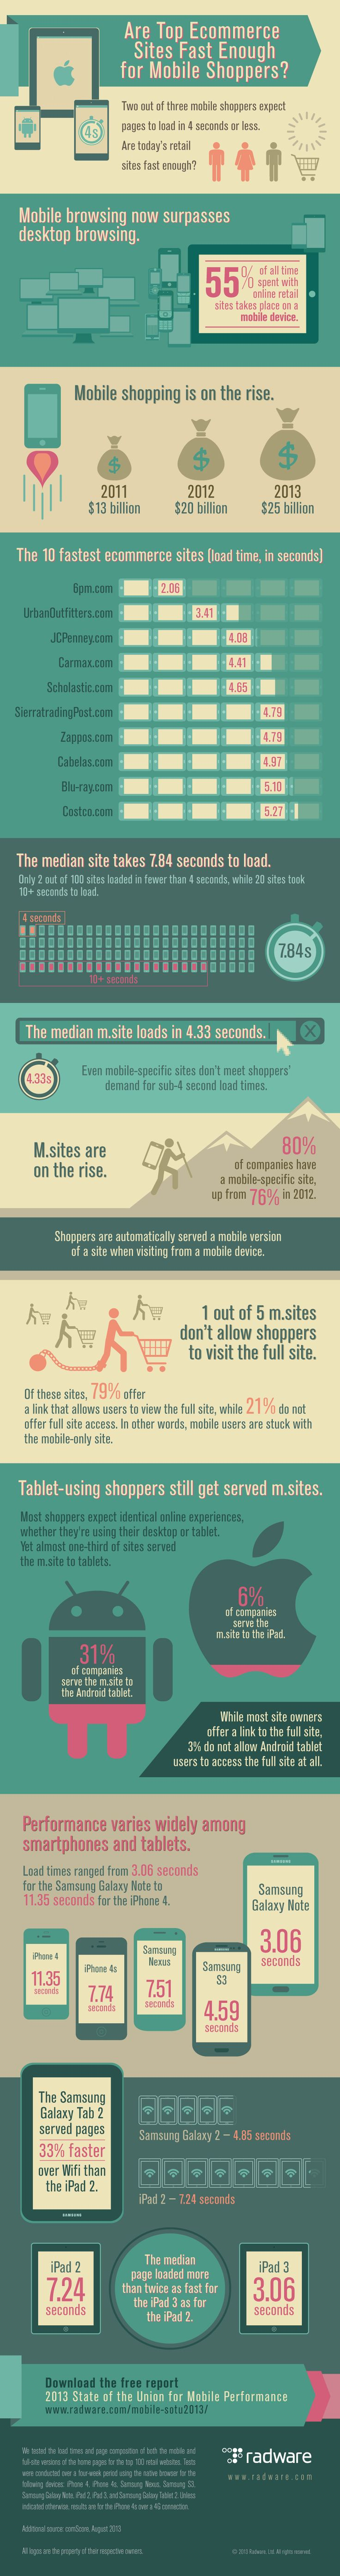 Digital-Marketing-Are-Top-Ecommerce-Sites-Fast-Enough-For-Mobile-Shoppers-Infographic-Ecommerce Digital Marketing : Are Top Ecommerce Sites Fast Enough For Mobile Shoppers? #Infographic #Ecommerce...